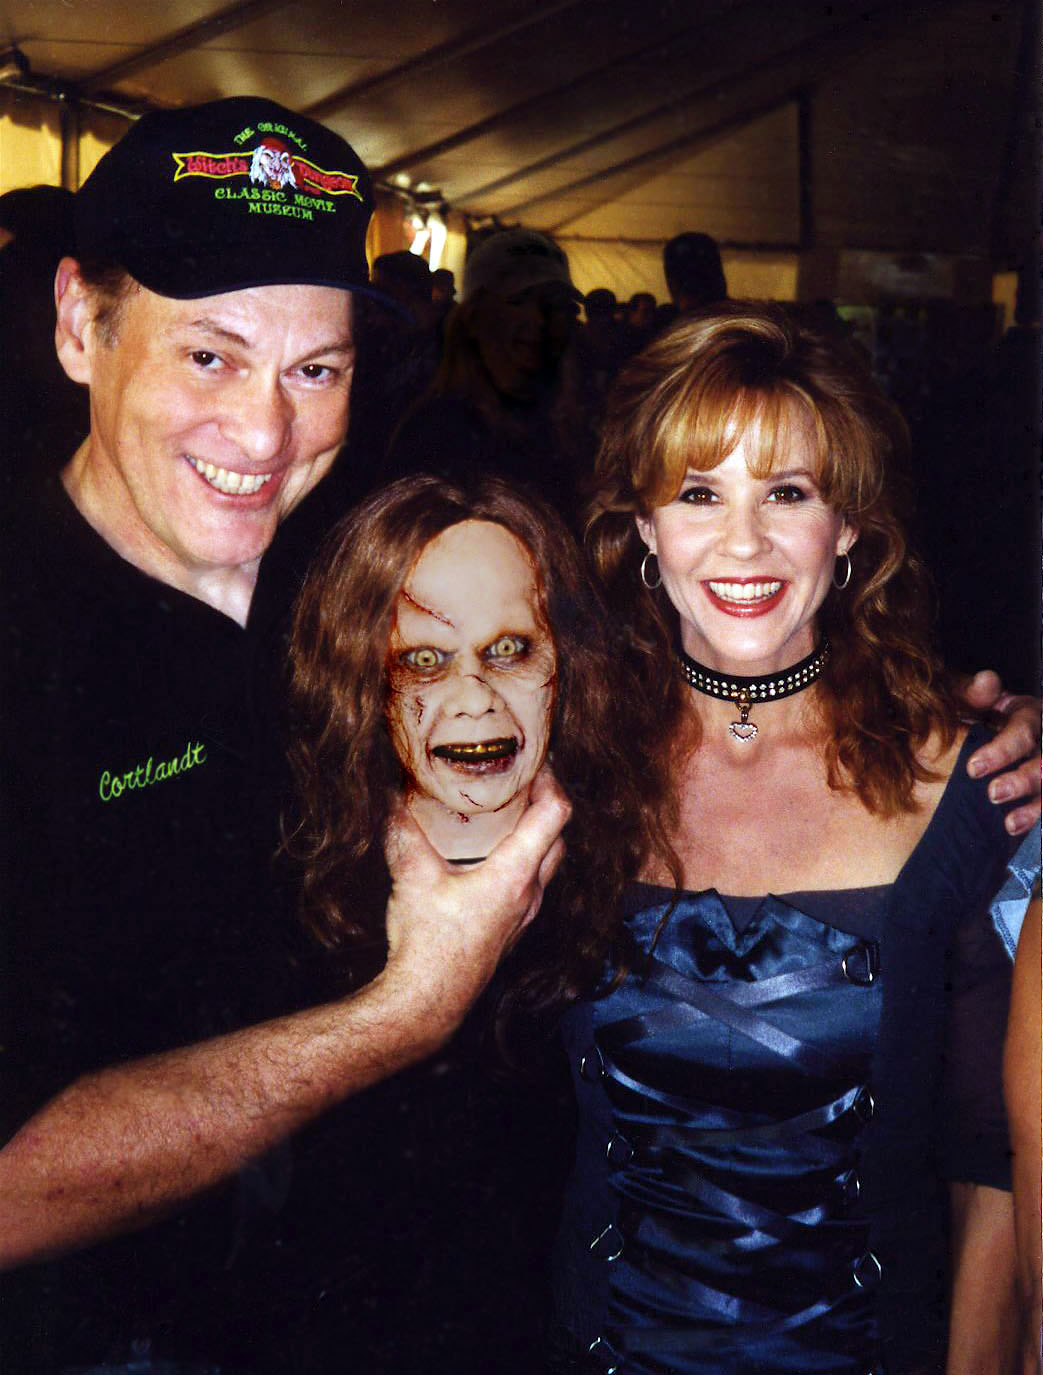 linda_blair_cortlandt_original_exorcist_head_dungeon_collection.jpg